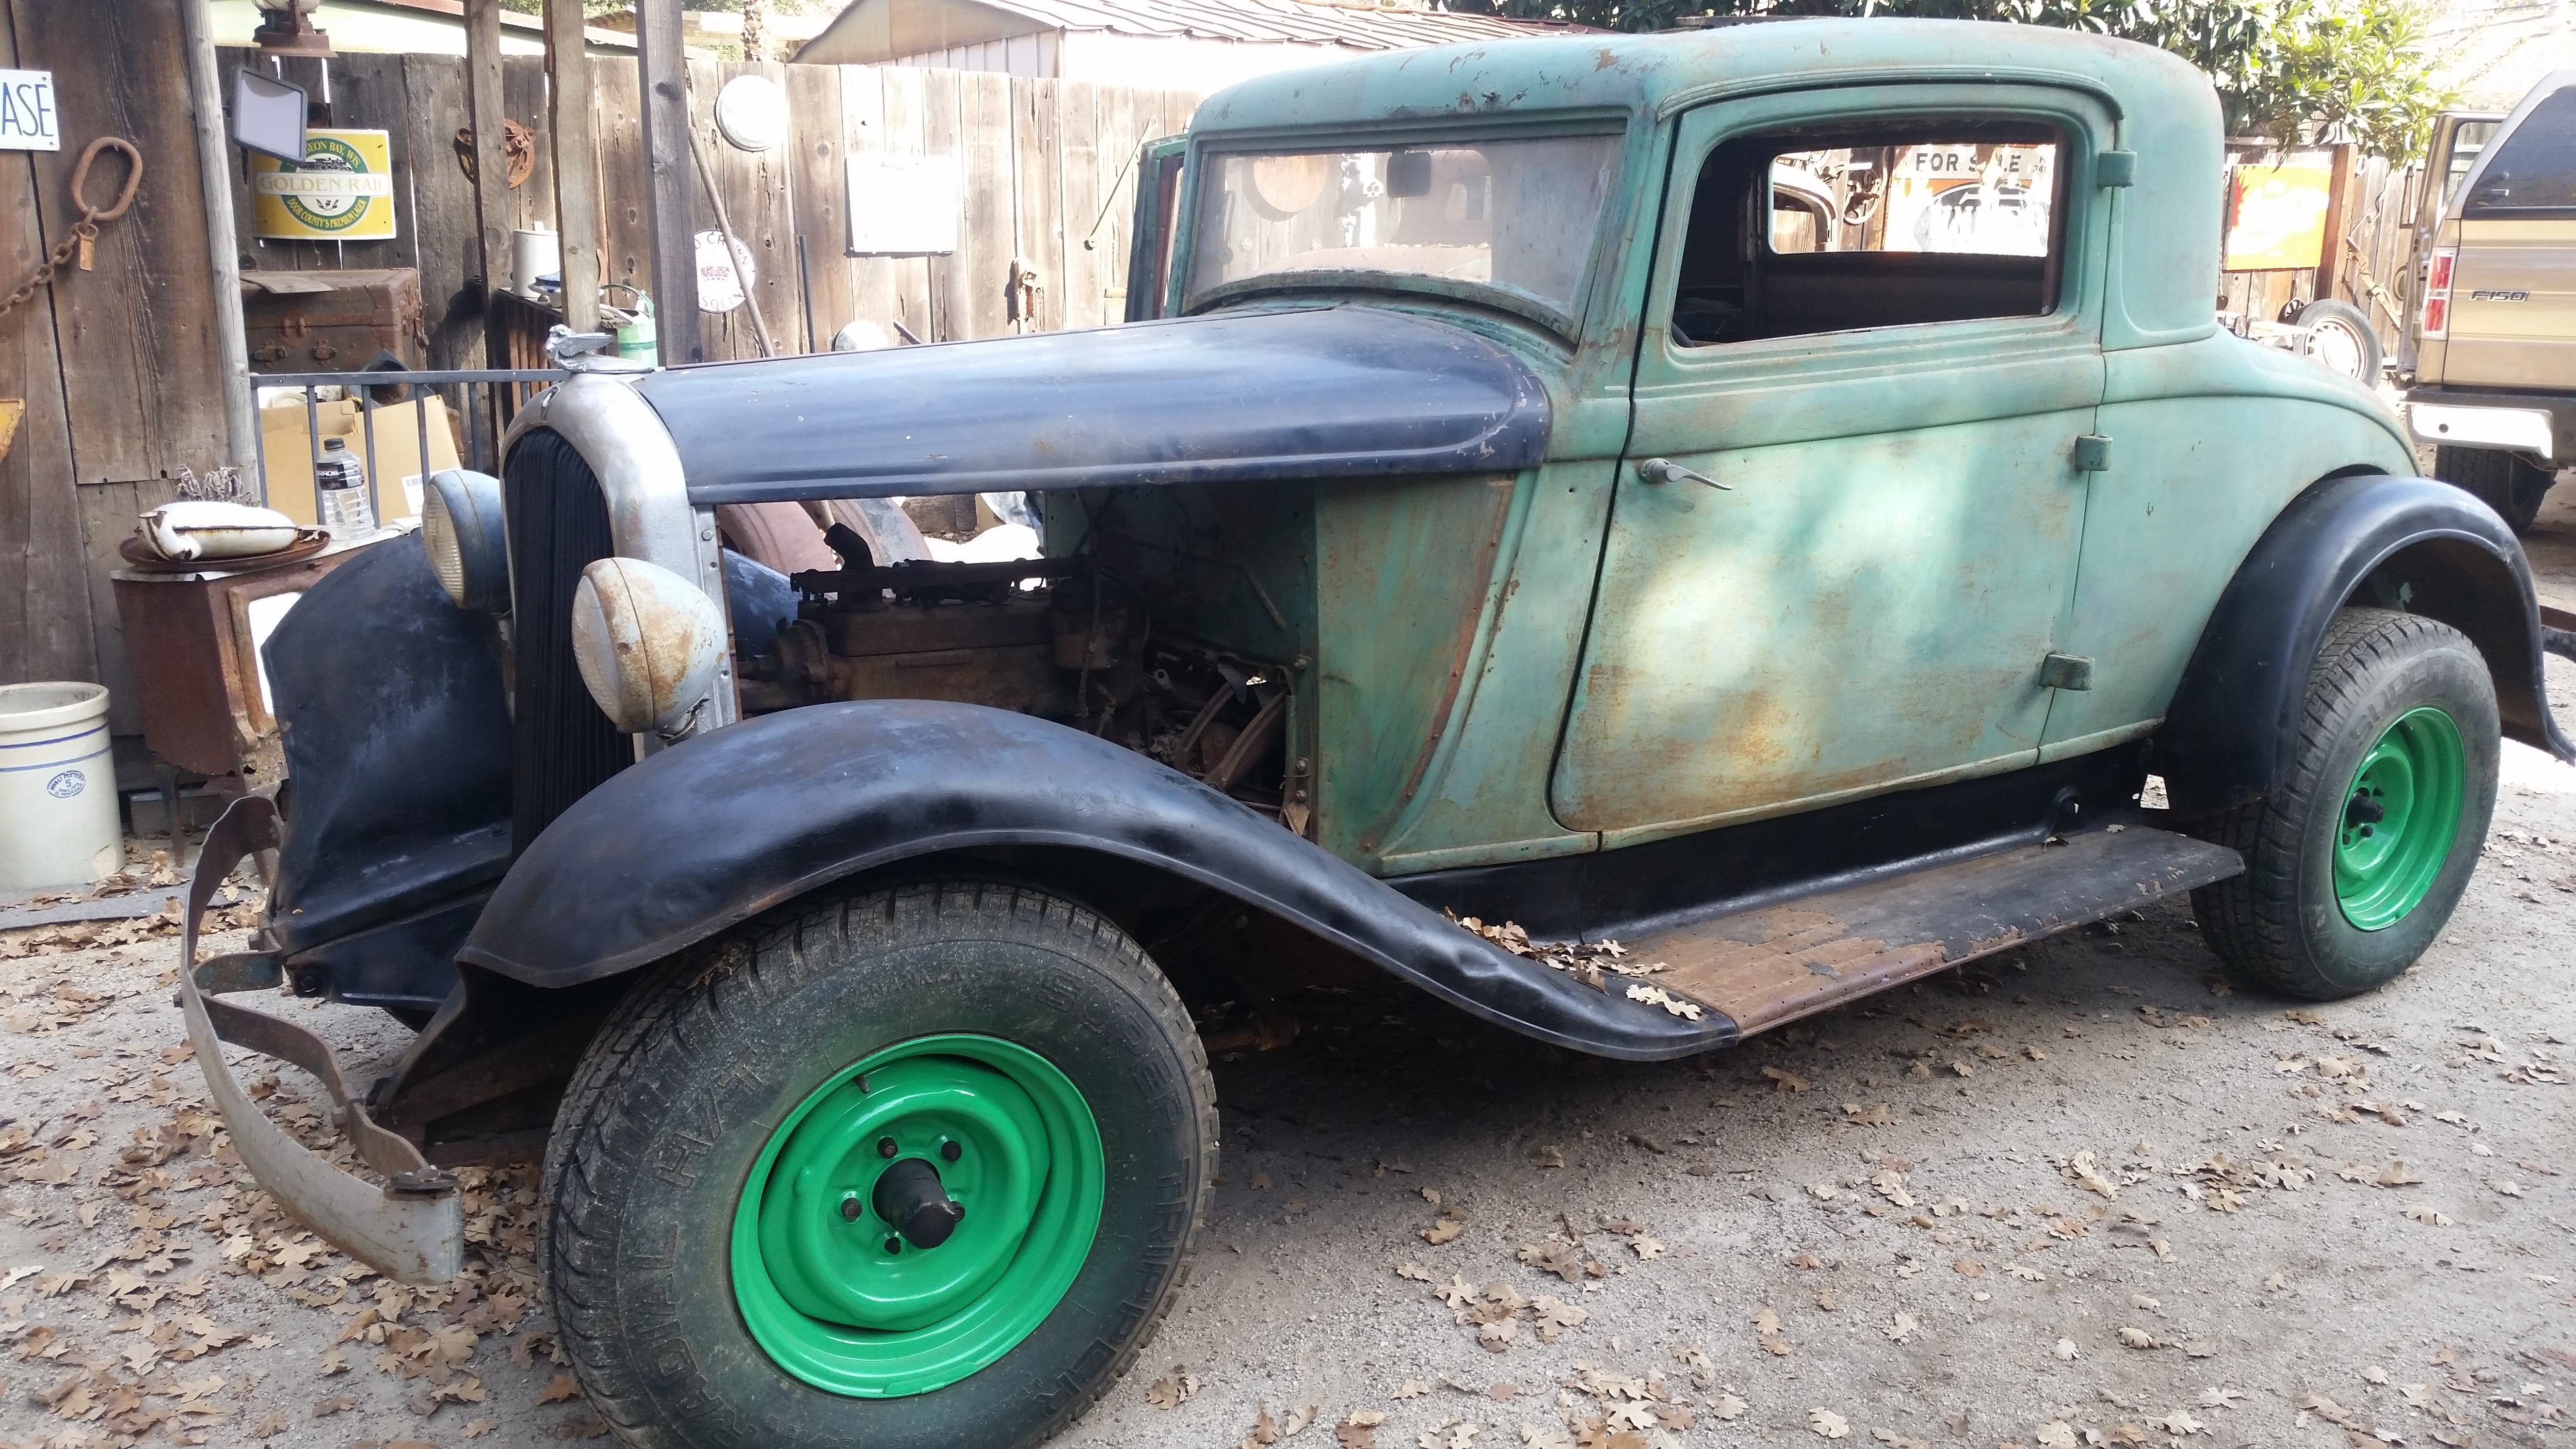 1932 Plymouth 3 window coupe sold - Cars For Sale - Antique